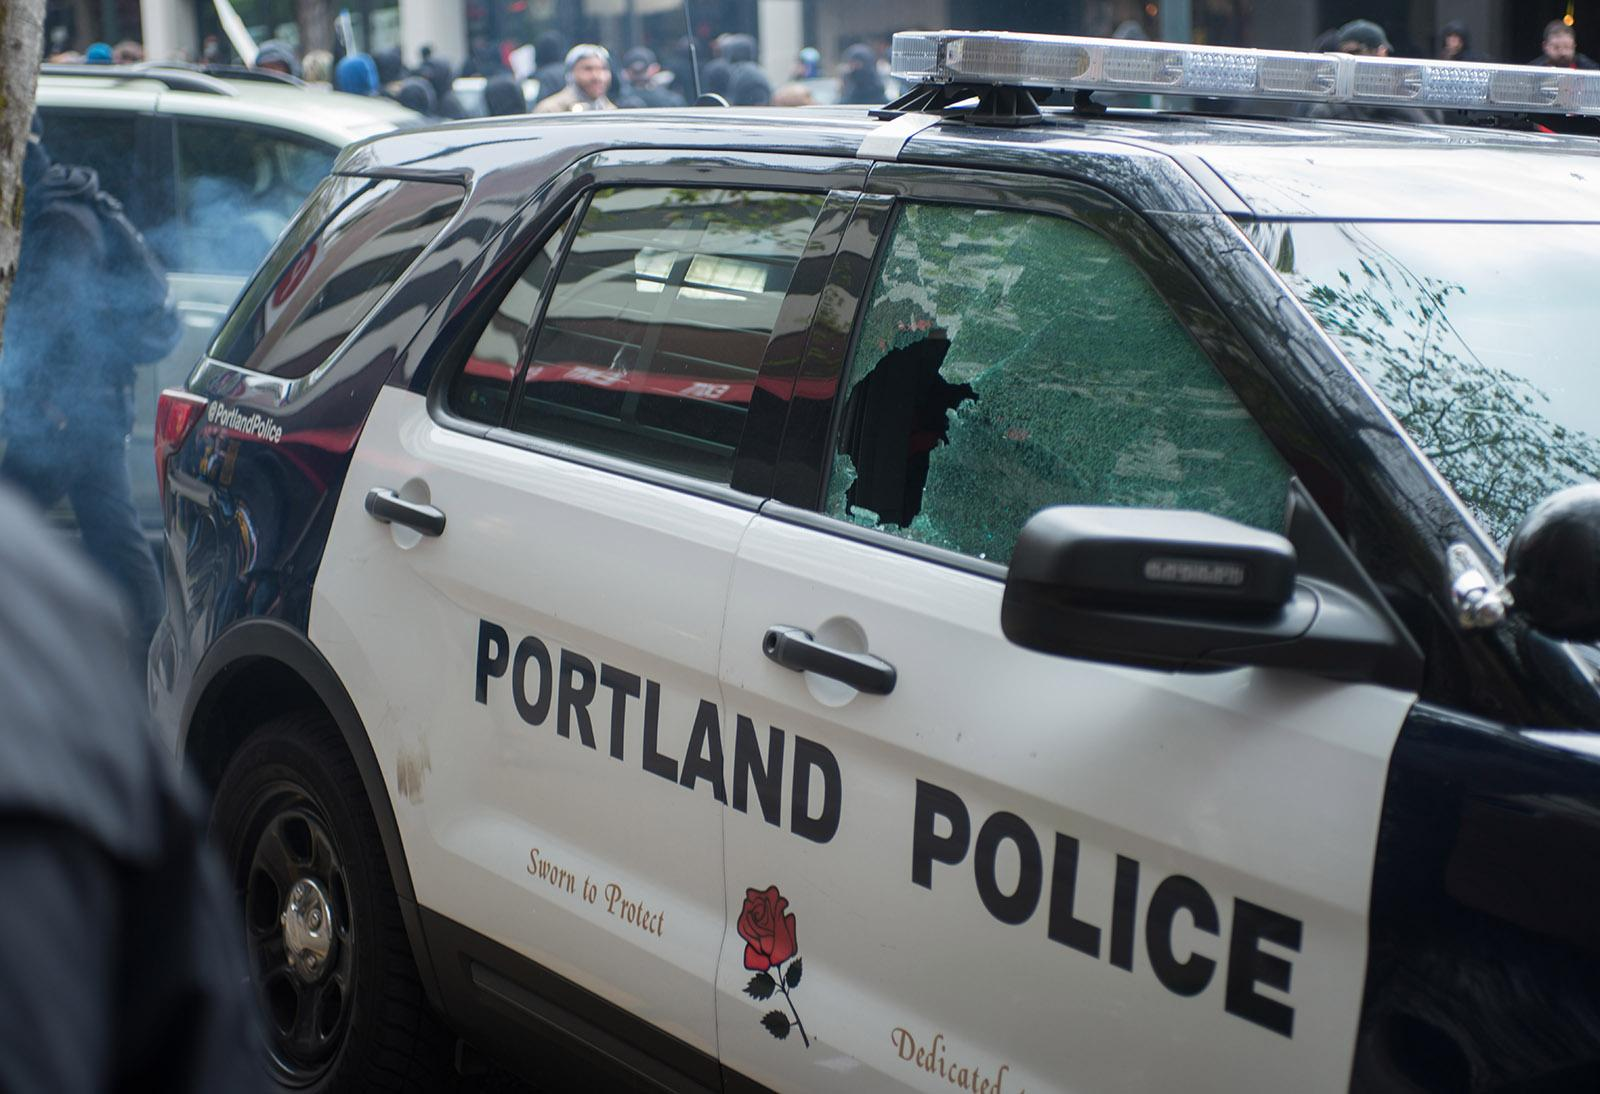 Damage from May Day protest in Portland - KATU image by Tristan Fortsch